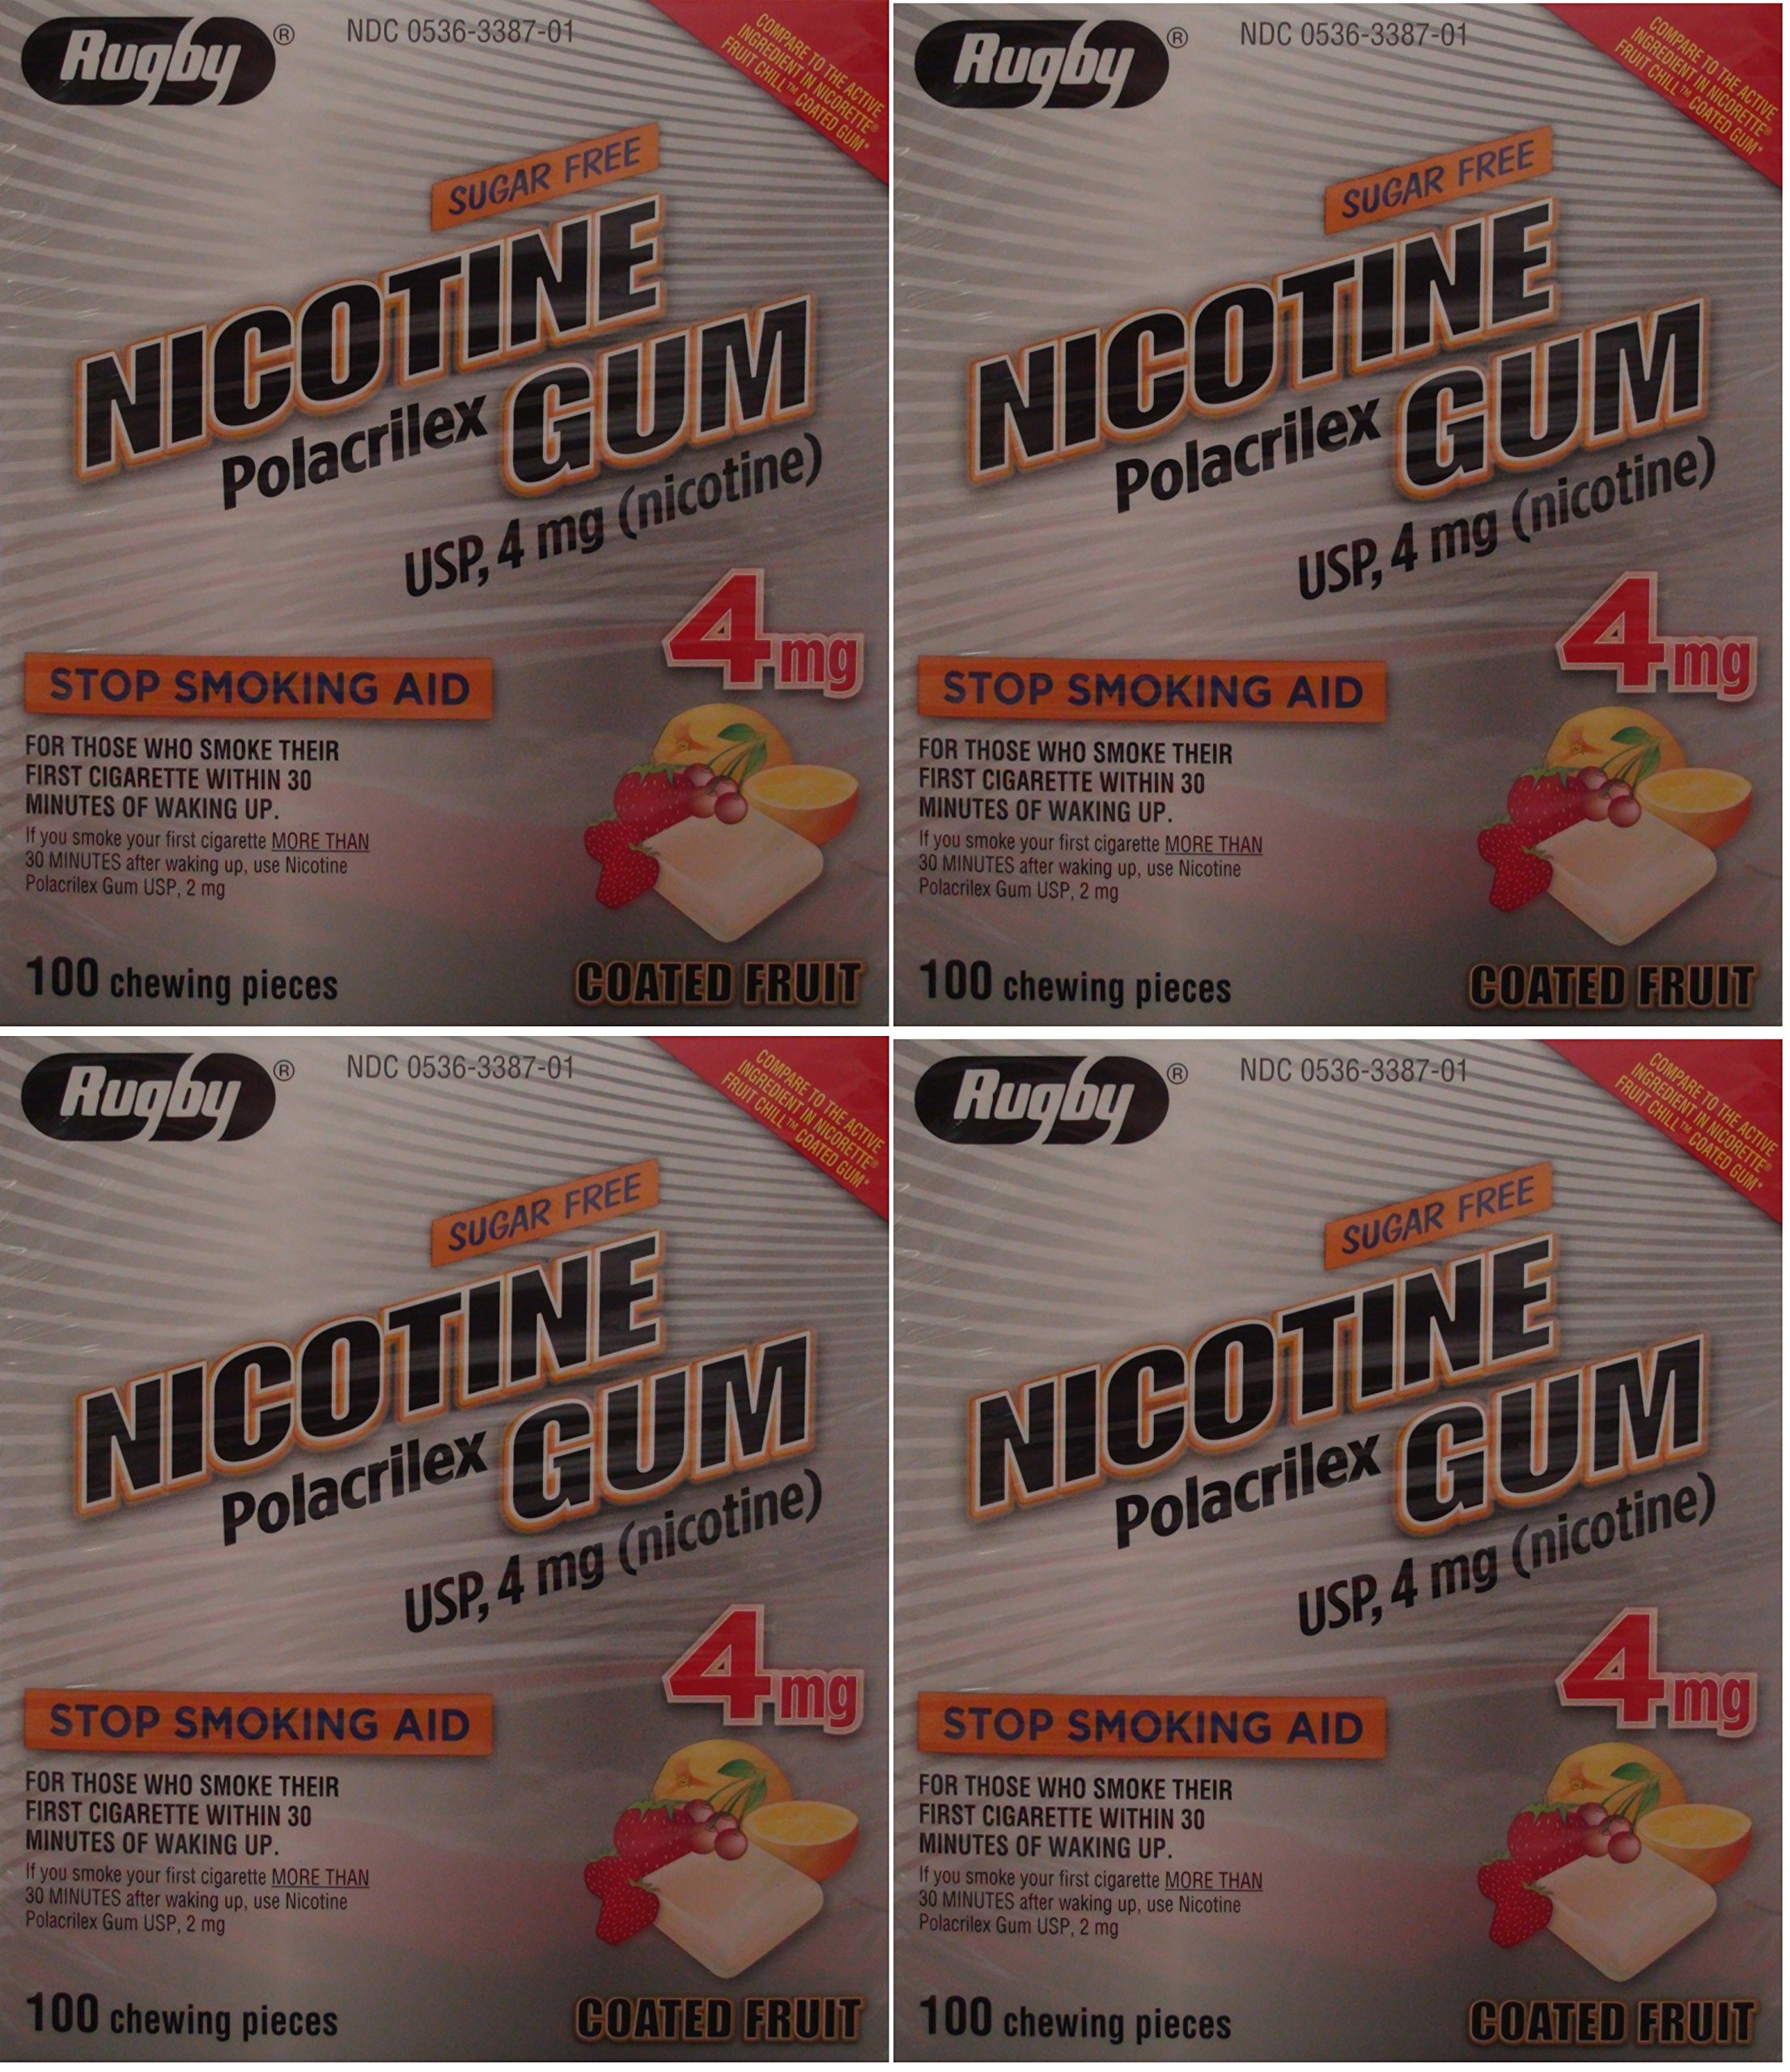 Nicotine Gum 4mg Sugar Free Coated Fruit Generic for Nicorette 100 Pieces per Box Pack of 4 Total 400 Pieces